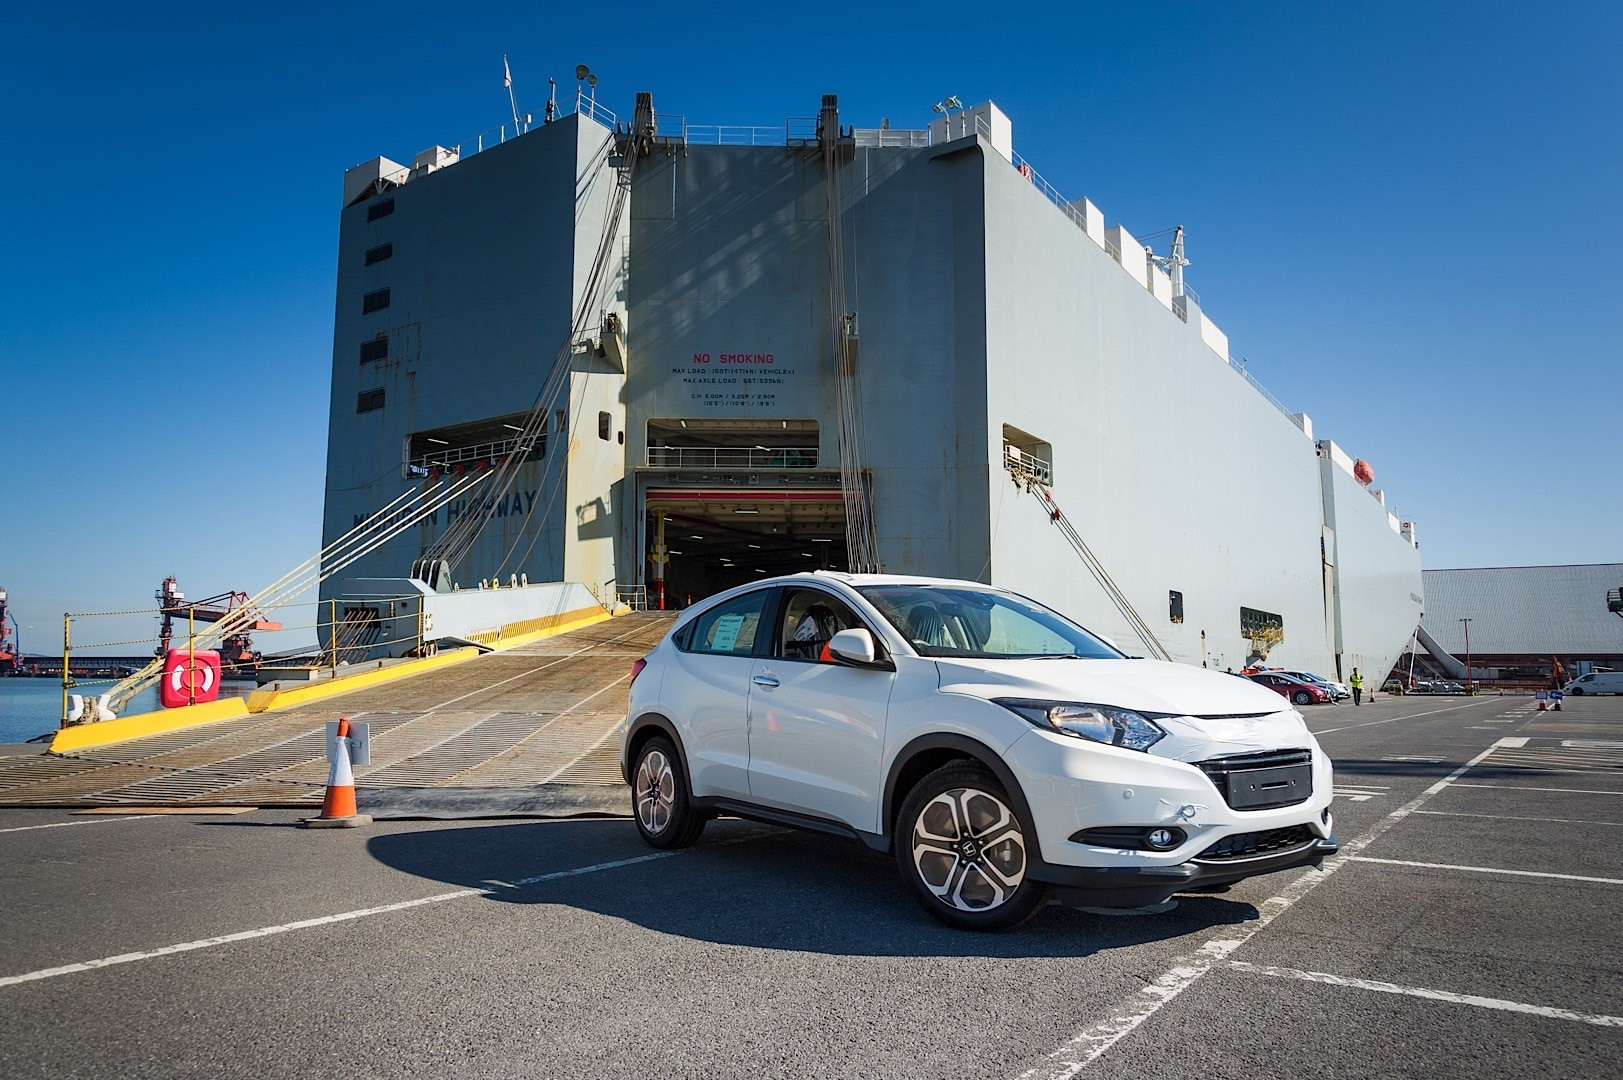 2015-honda-hr-v-literally-reaches-uk-shores-350-orders-have-been-already-placed_1.jpg